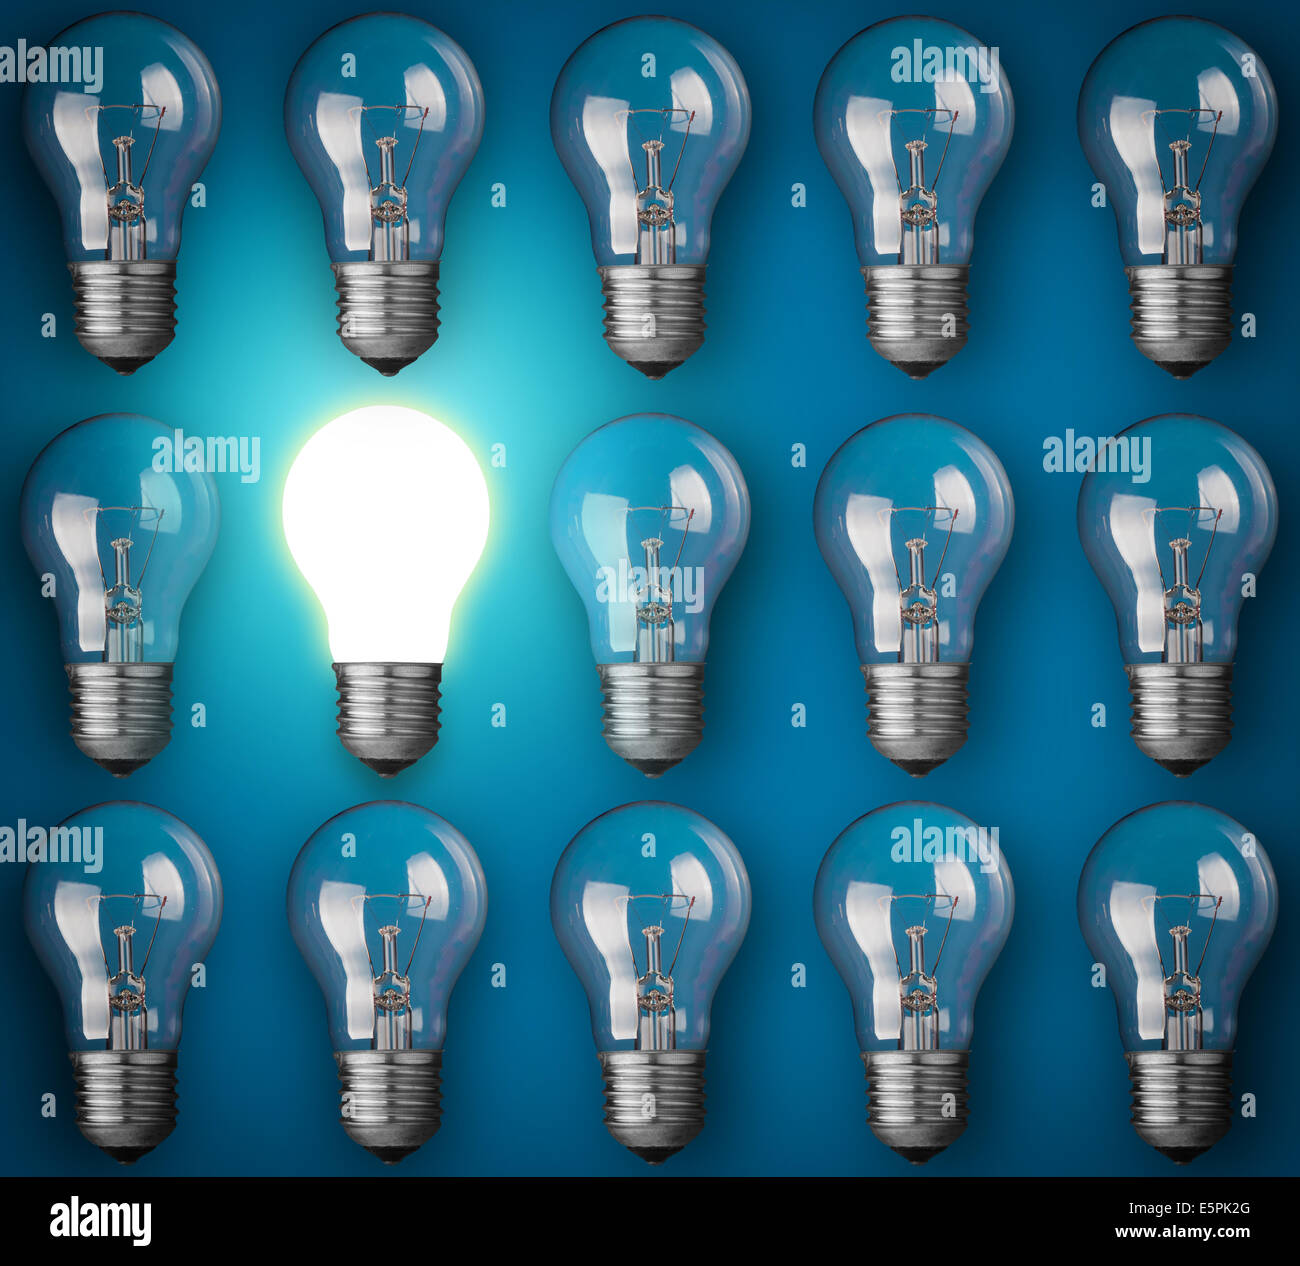 Idea concept with light bulbs on blue background - Stock Image